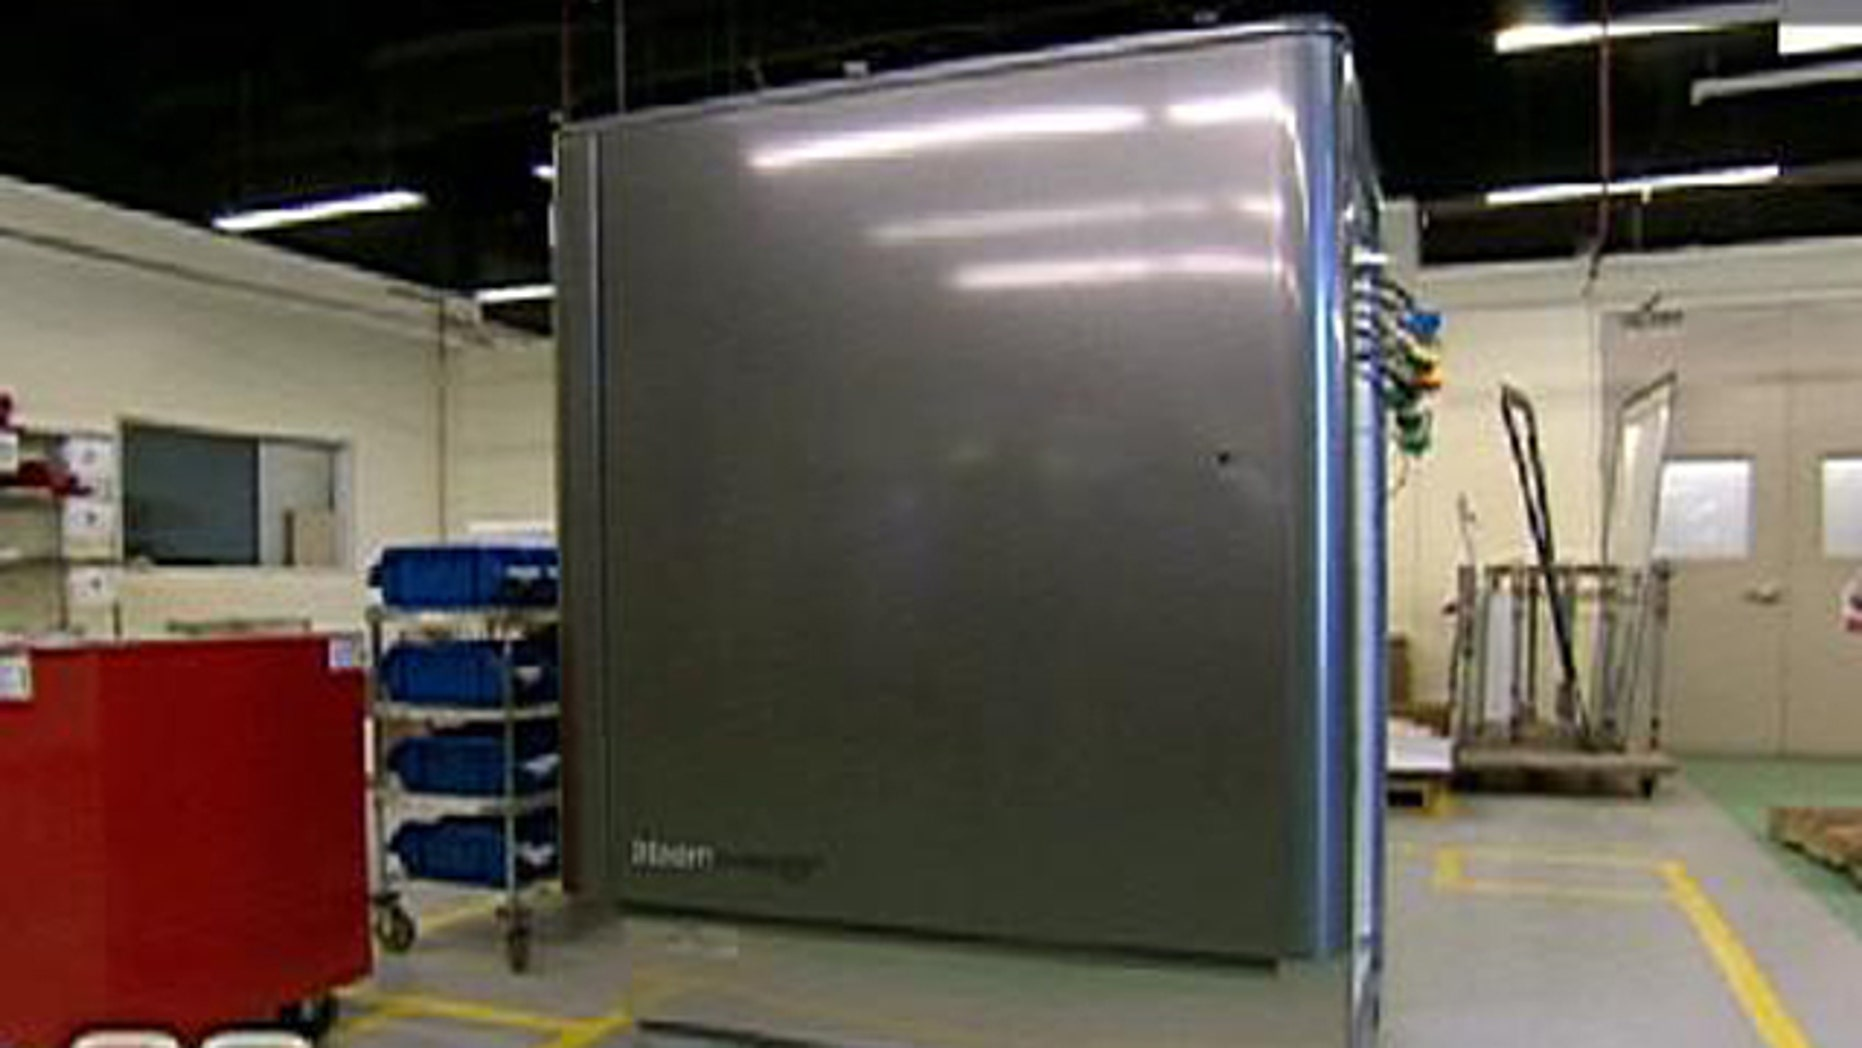 A screenshot from 60 Minutes showing the Bloom Box, a fridge-sized fuel cell designed to make electricity through chemistry.